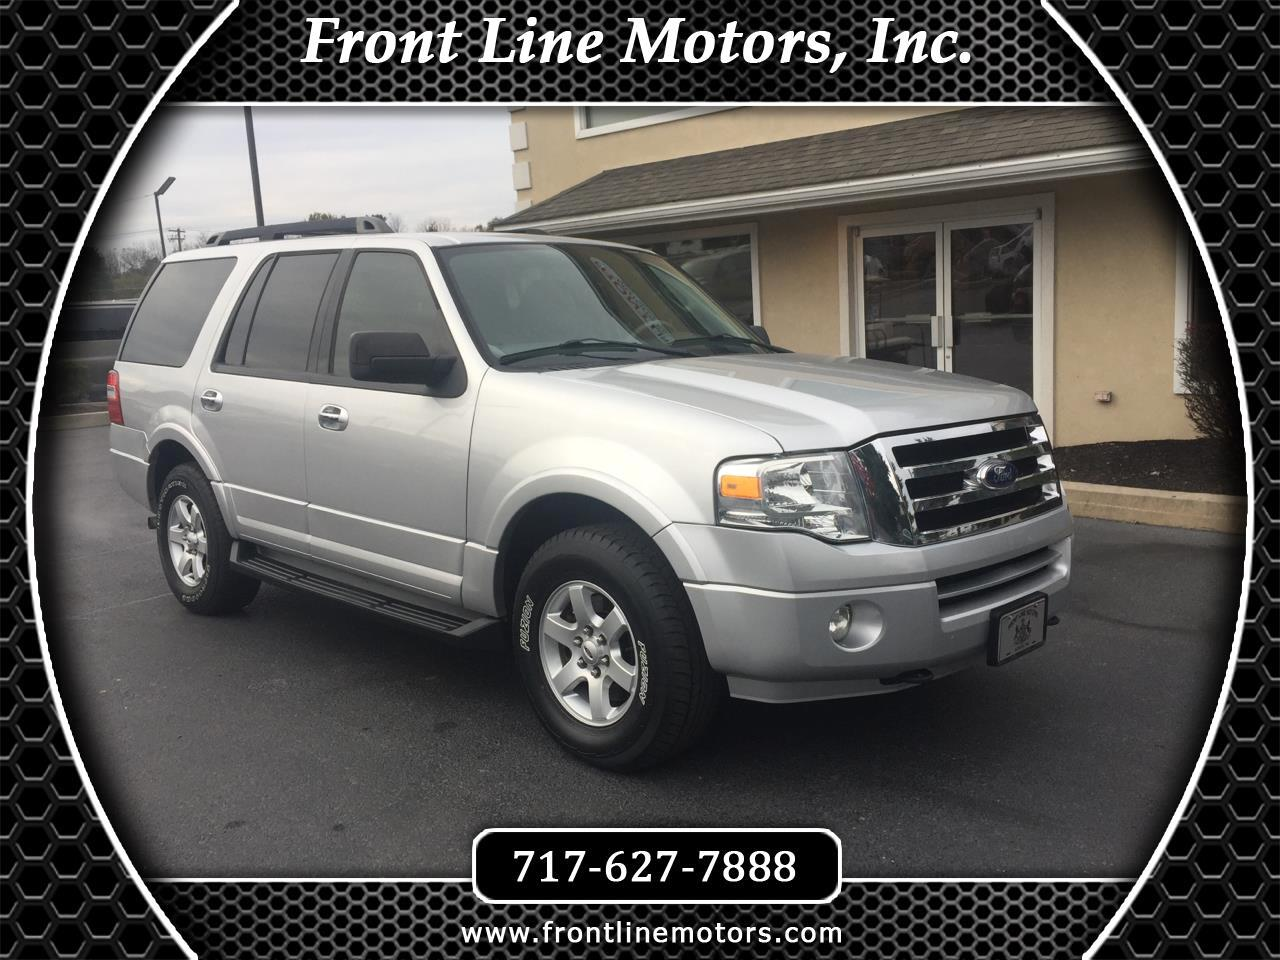 2010 Ford Expedition 119